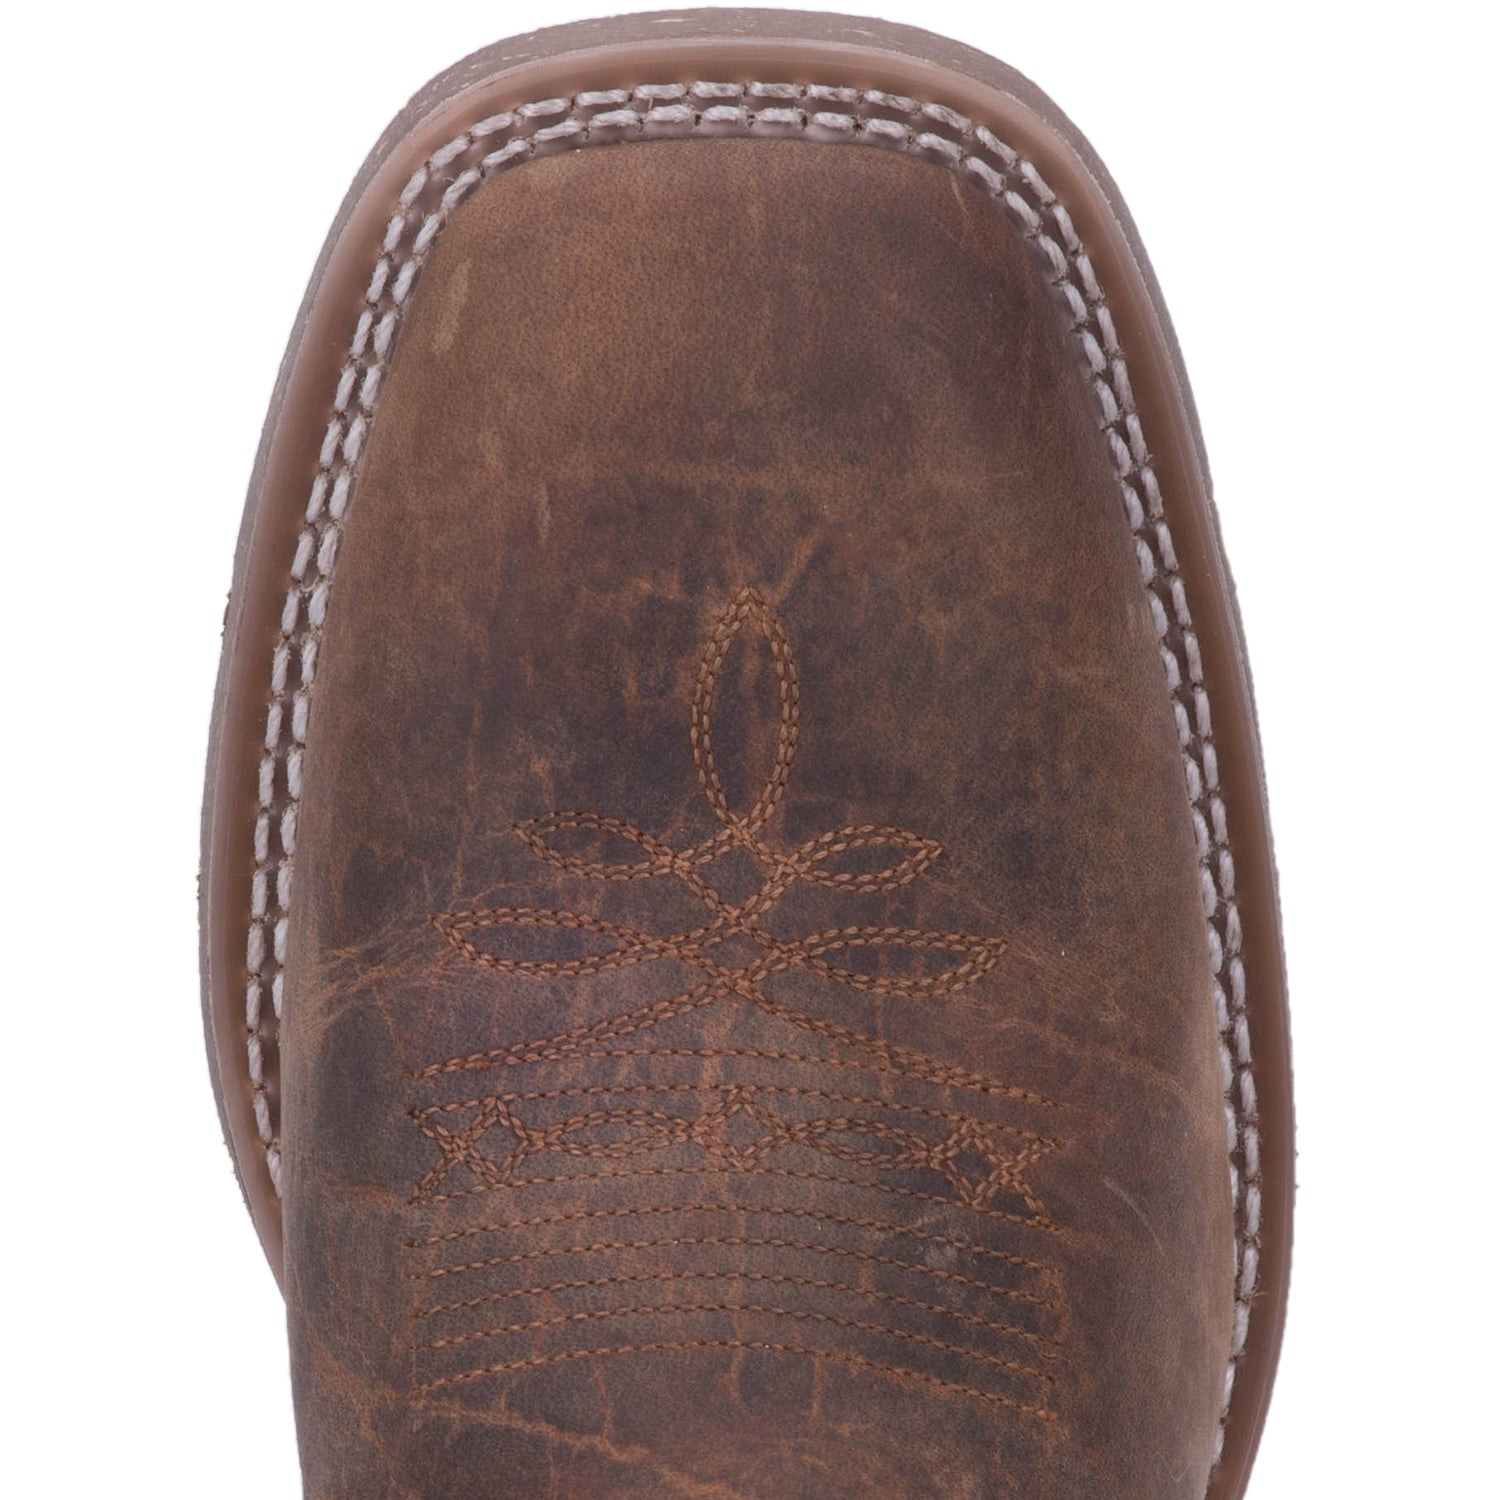 DURANT LEATHER BOOT